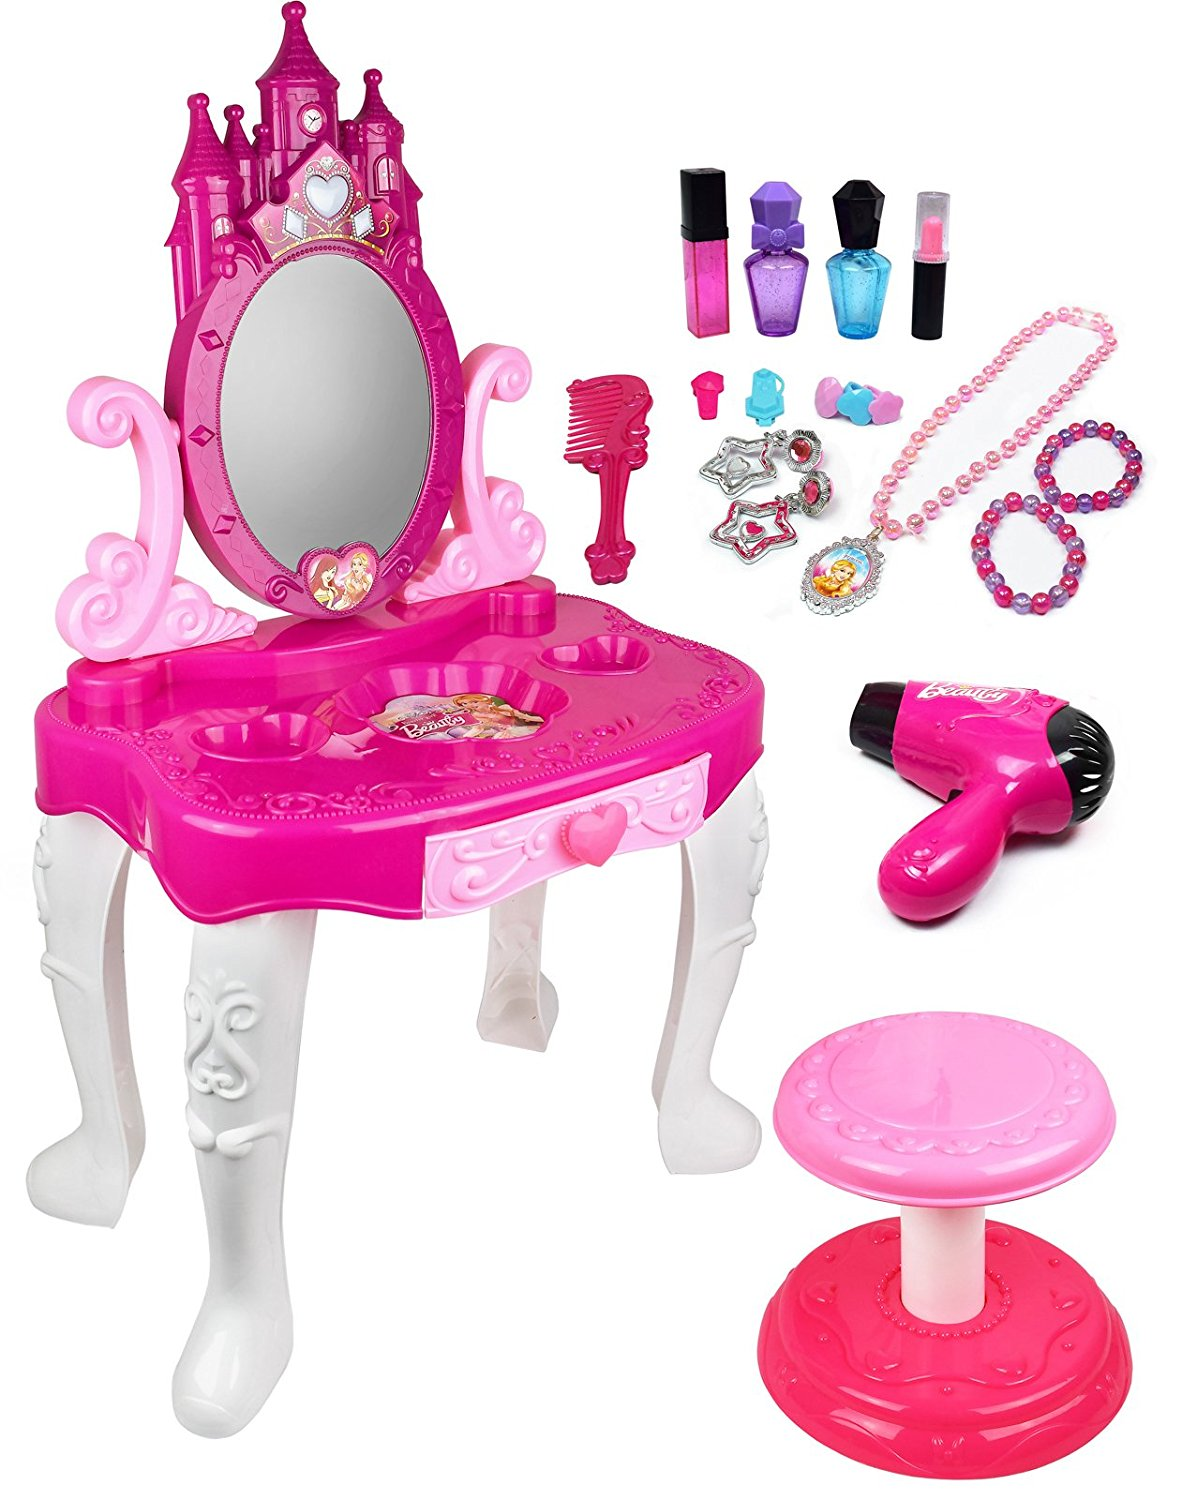 Kiddie Play Pretend Play Kids Vanity Table And Chair